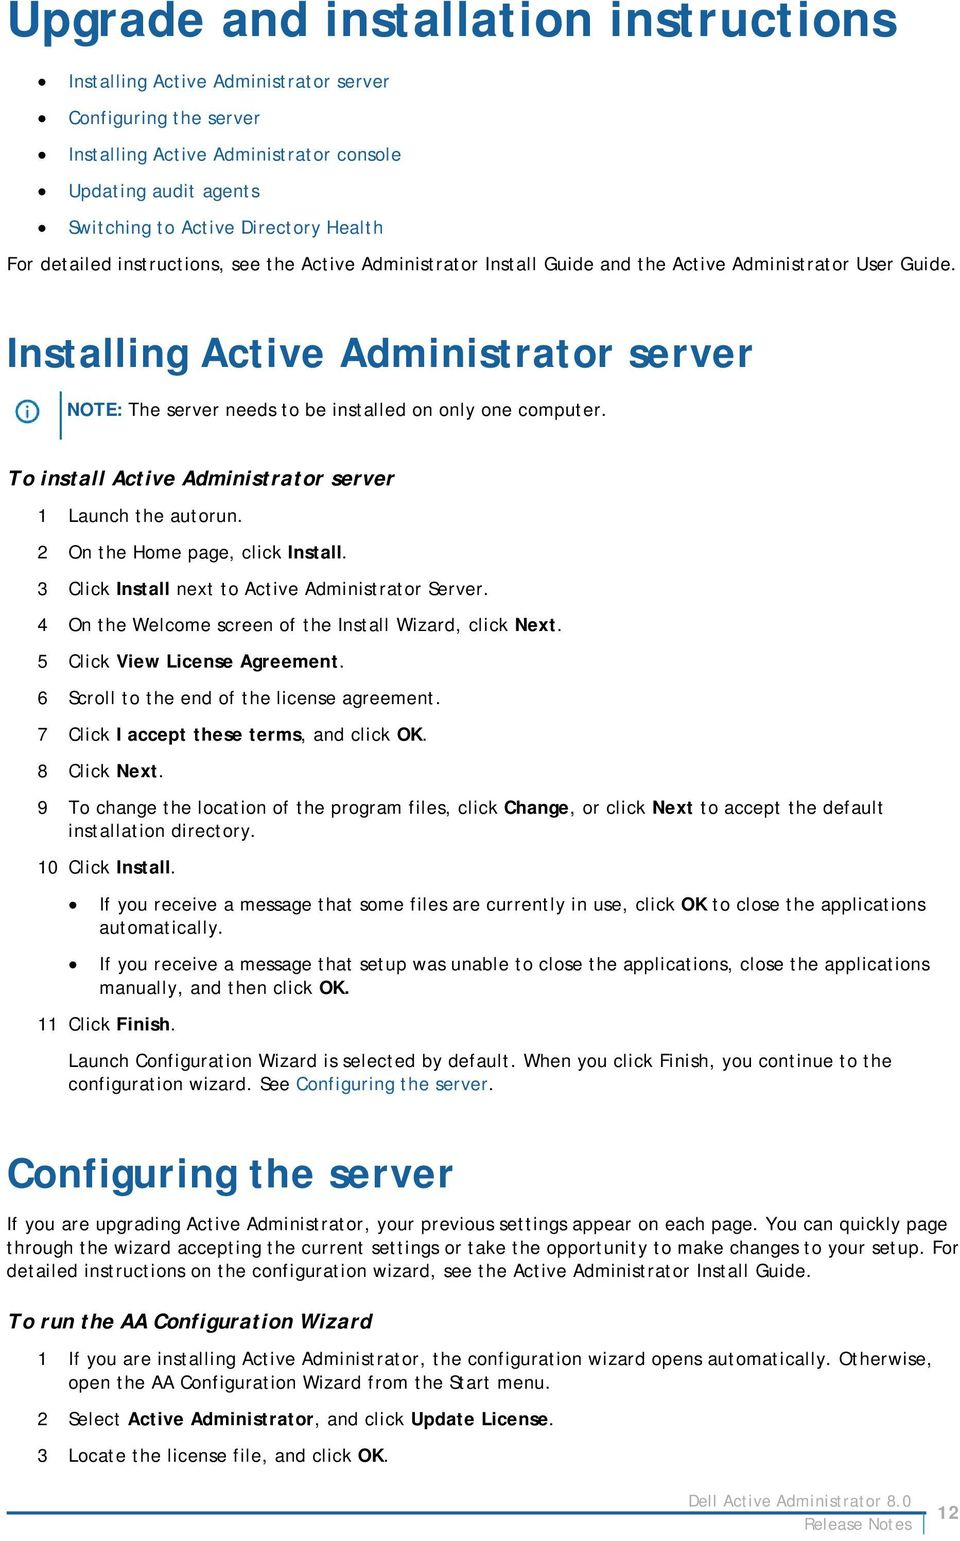 Dell Active Administrator 8 0  About Active Administrator PDF